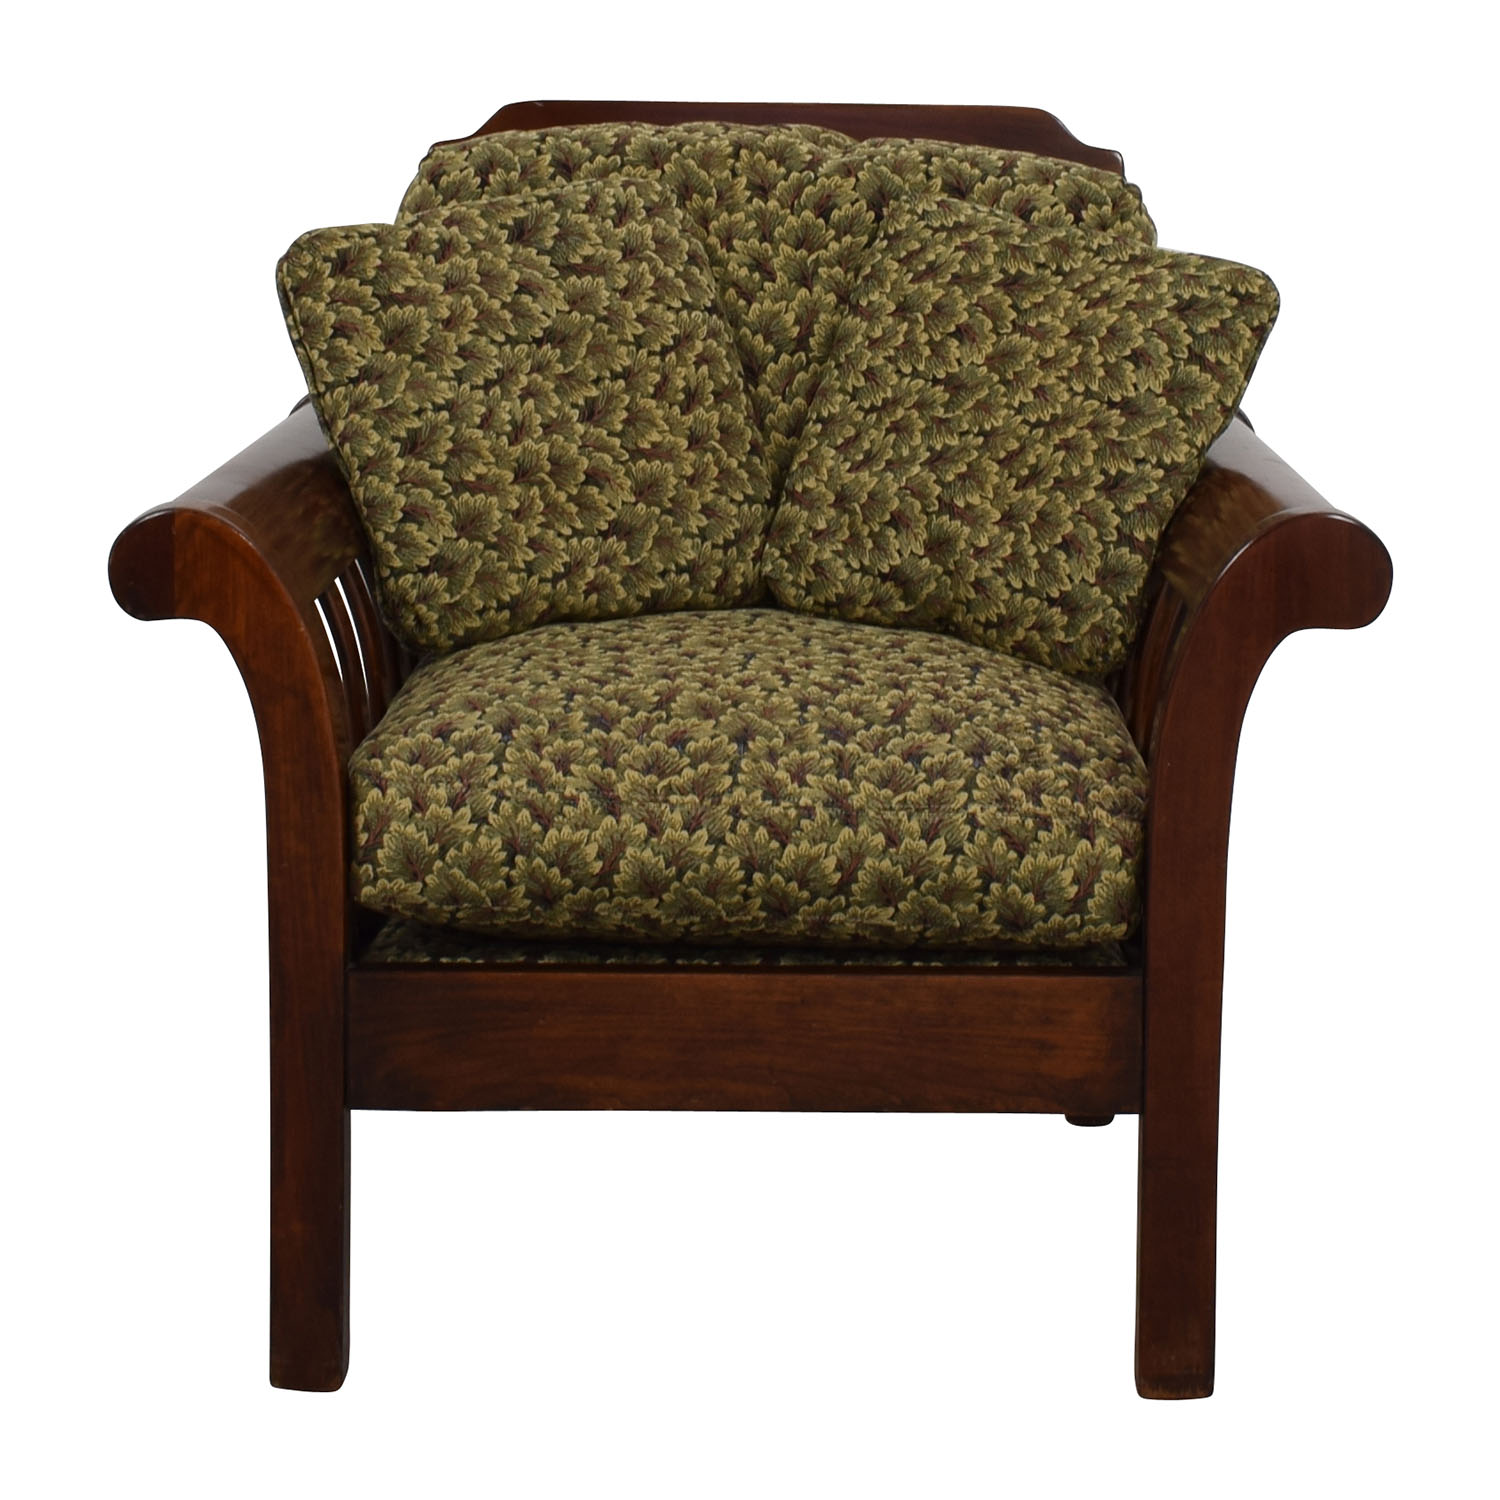 Hickory Chair Company Hickory Chair Company Wood Chair Used ...